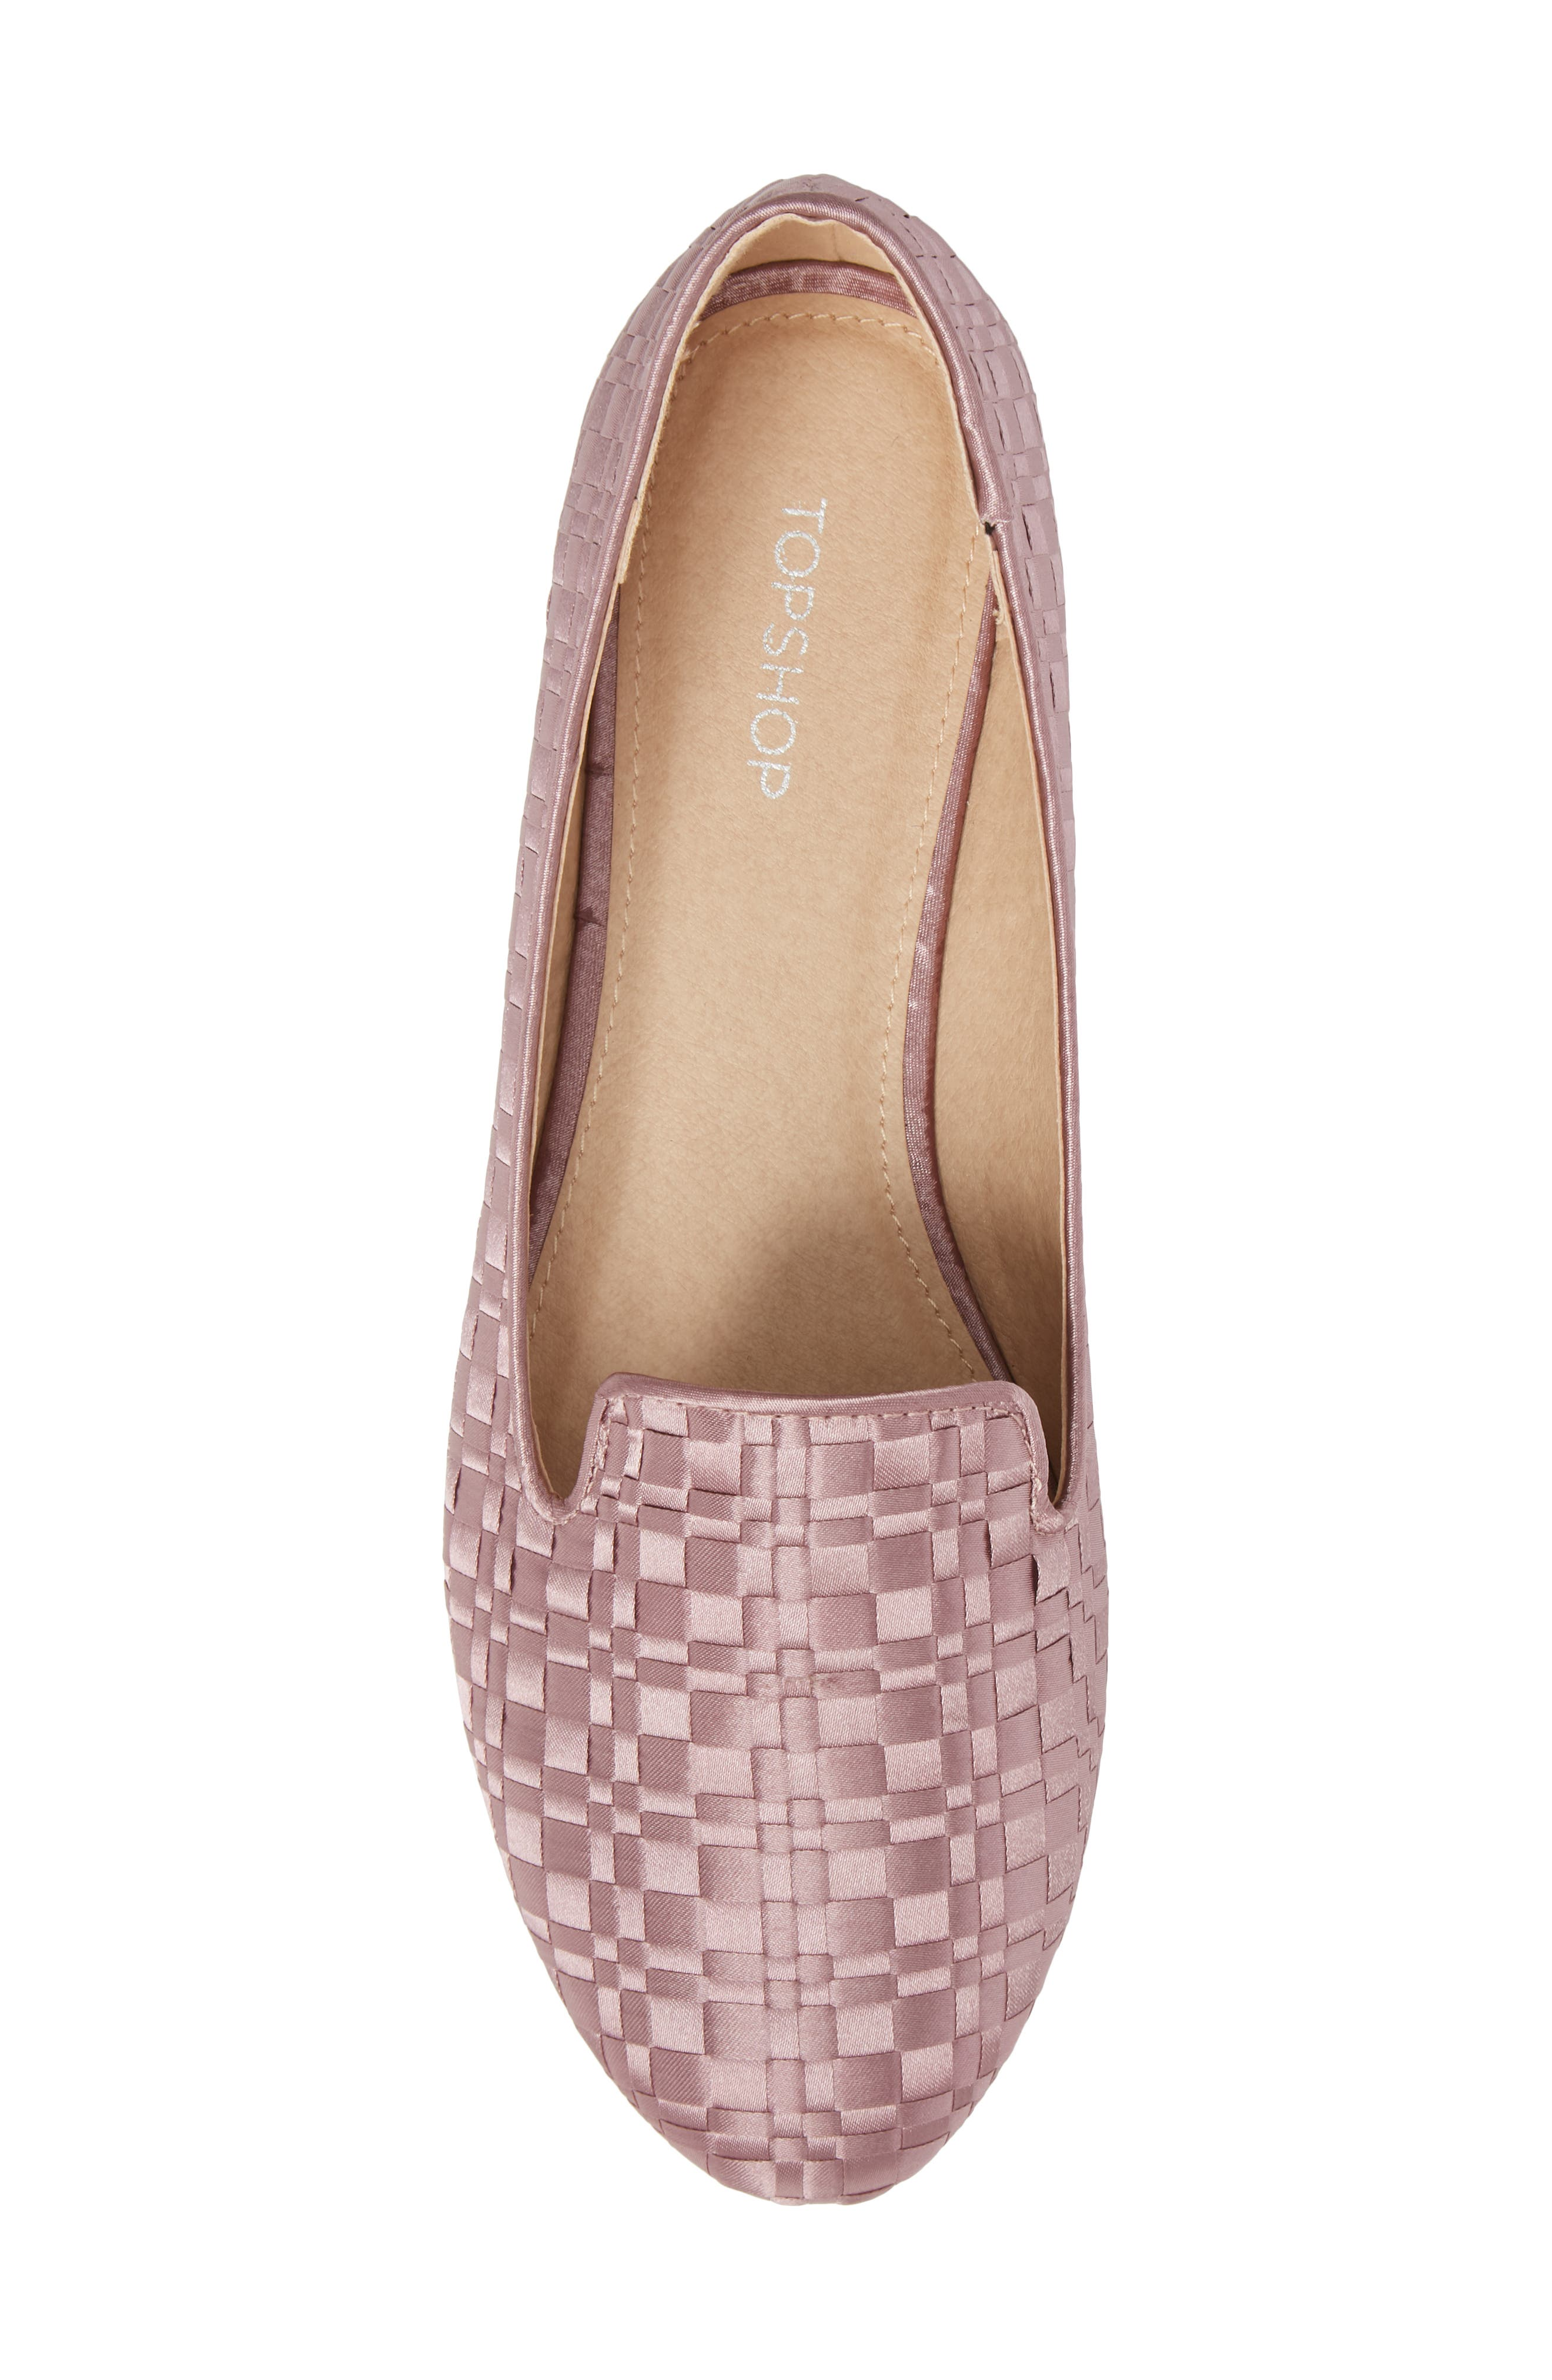 Sasha Textured Woven Loafer,                             Alternate thumbnail 5, color,                             Pink